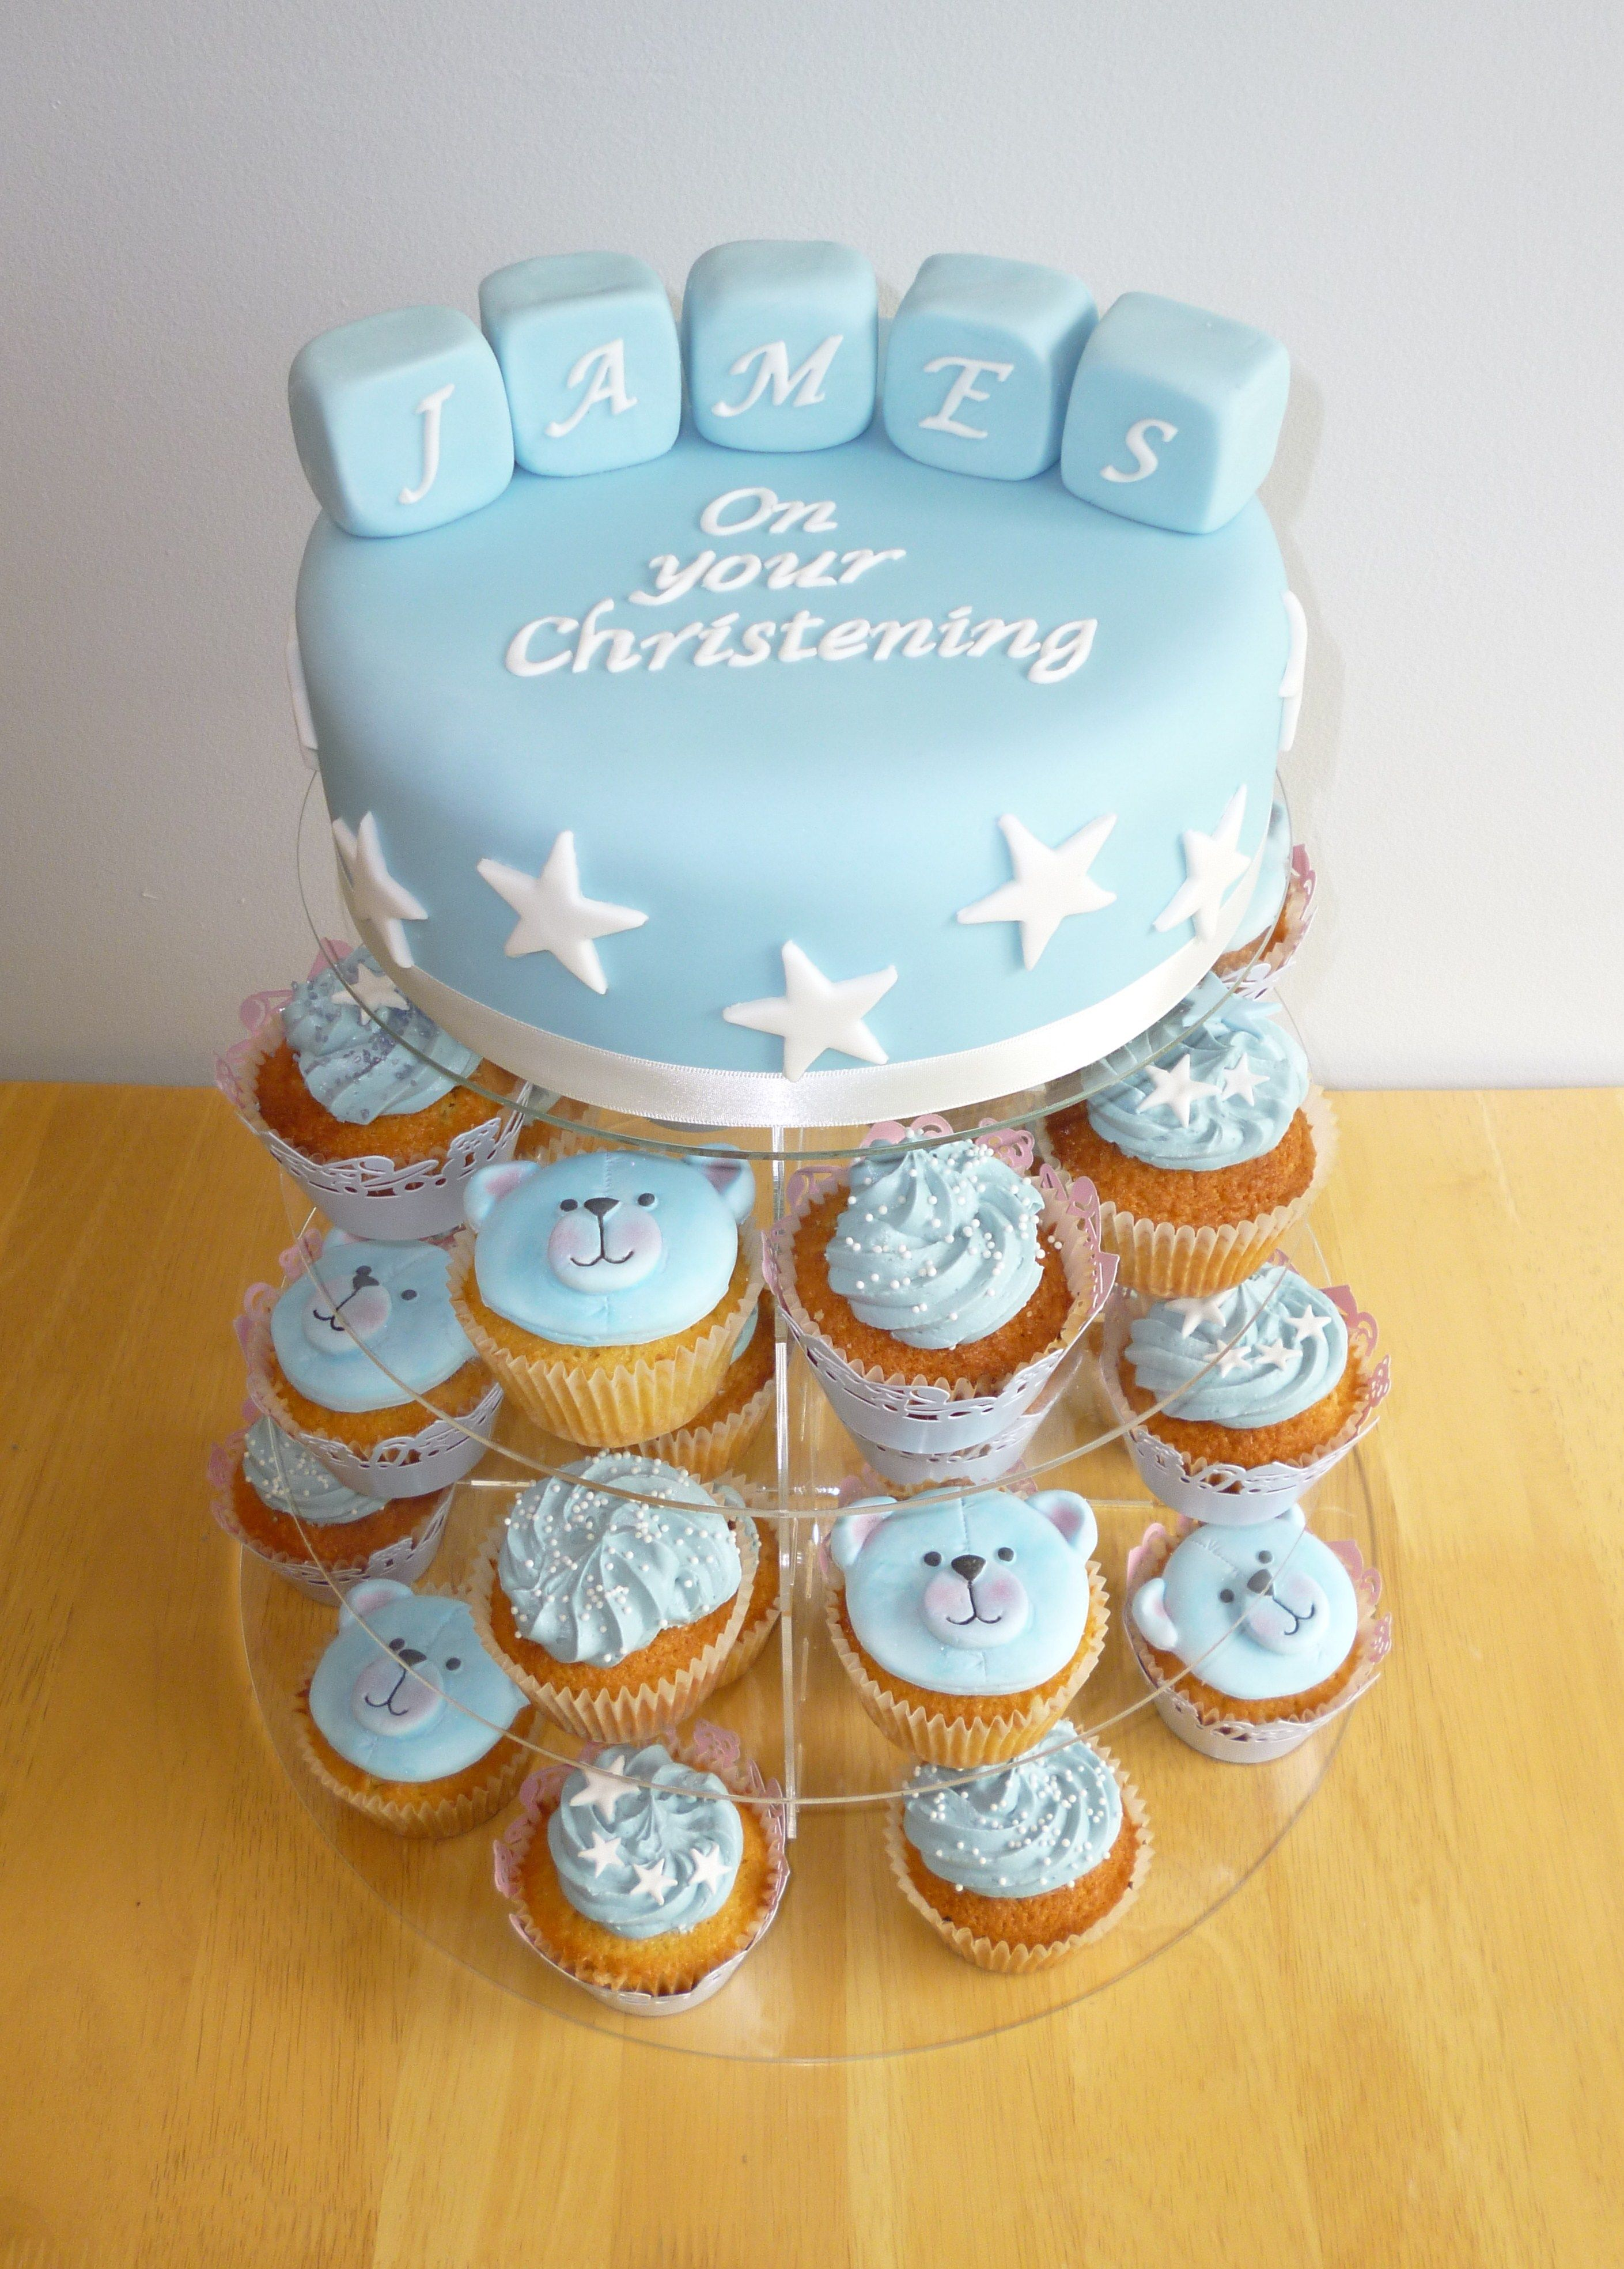 Christening Cake Amp Cupcakes For A Boy